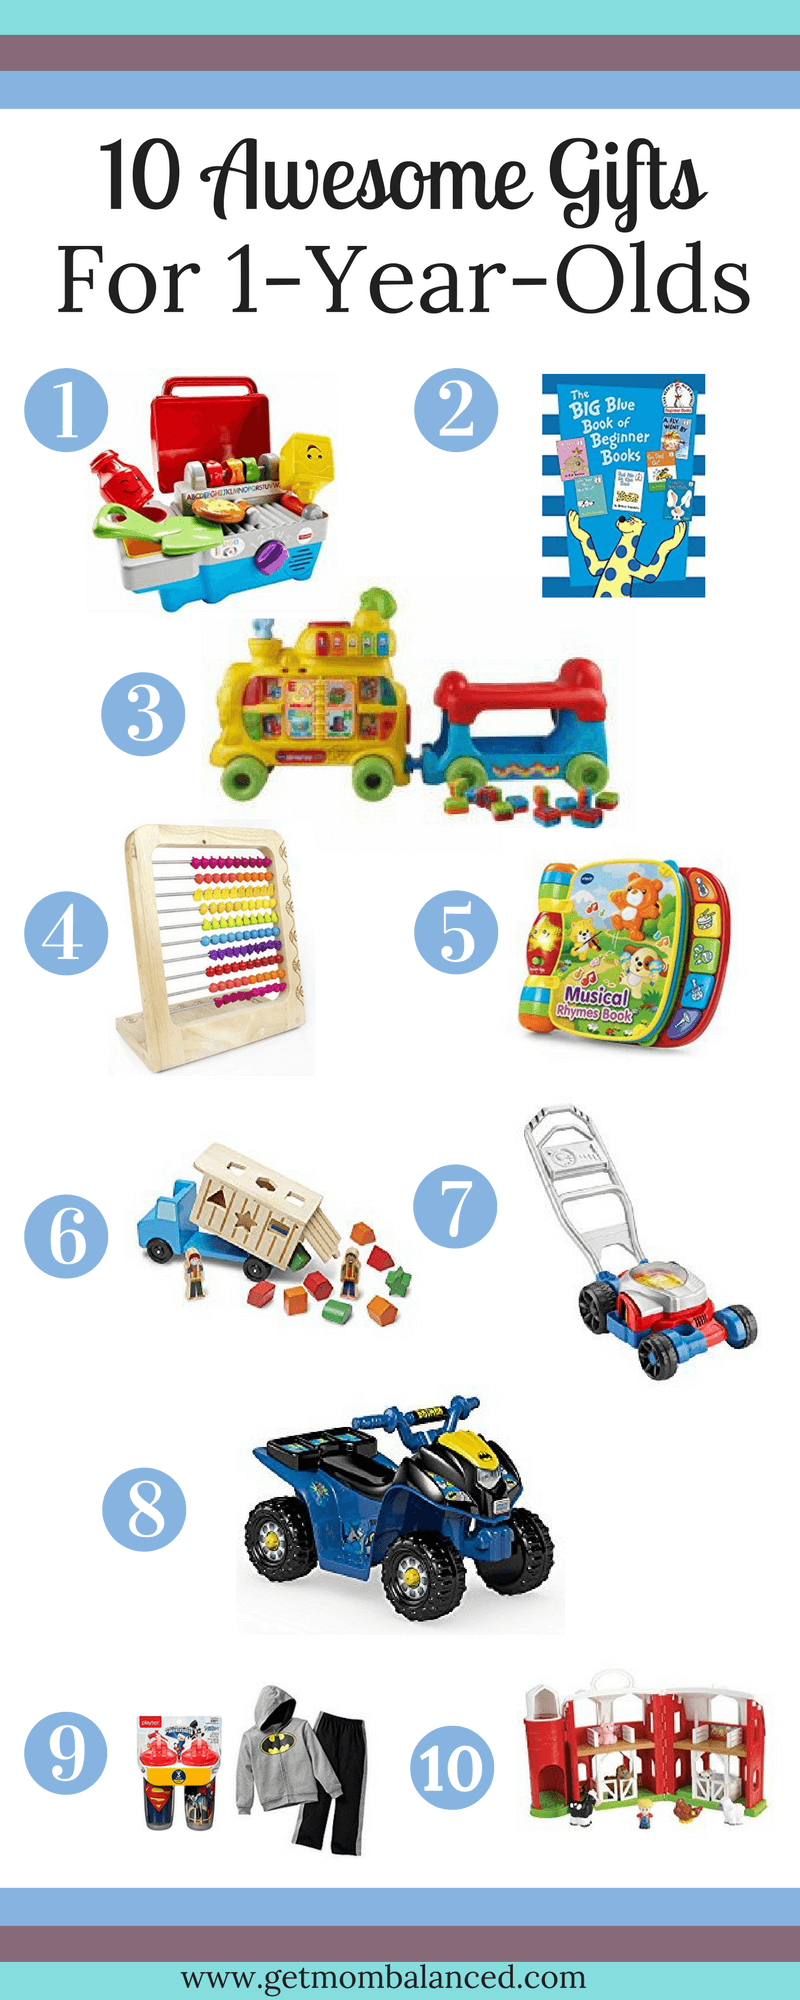 10 Awesome Gifts For 1 Year Olds Boyfriend Gifts 1 Year Old Christmas Gifts Best Christmas Gifts